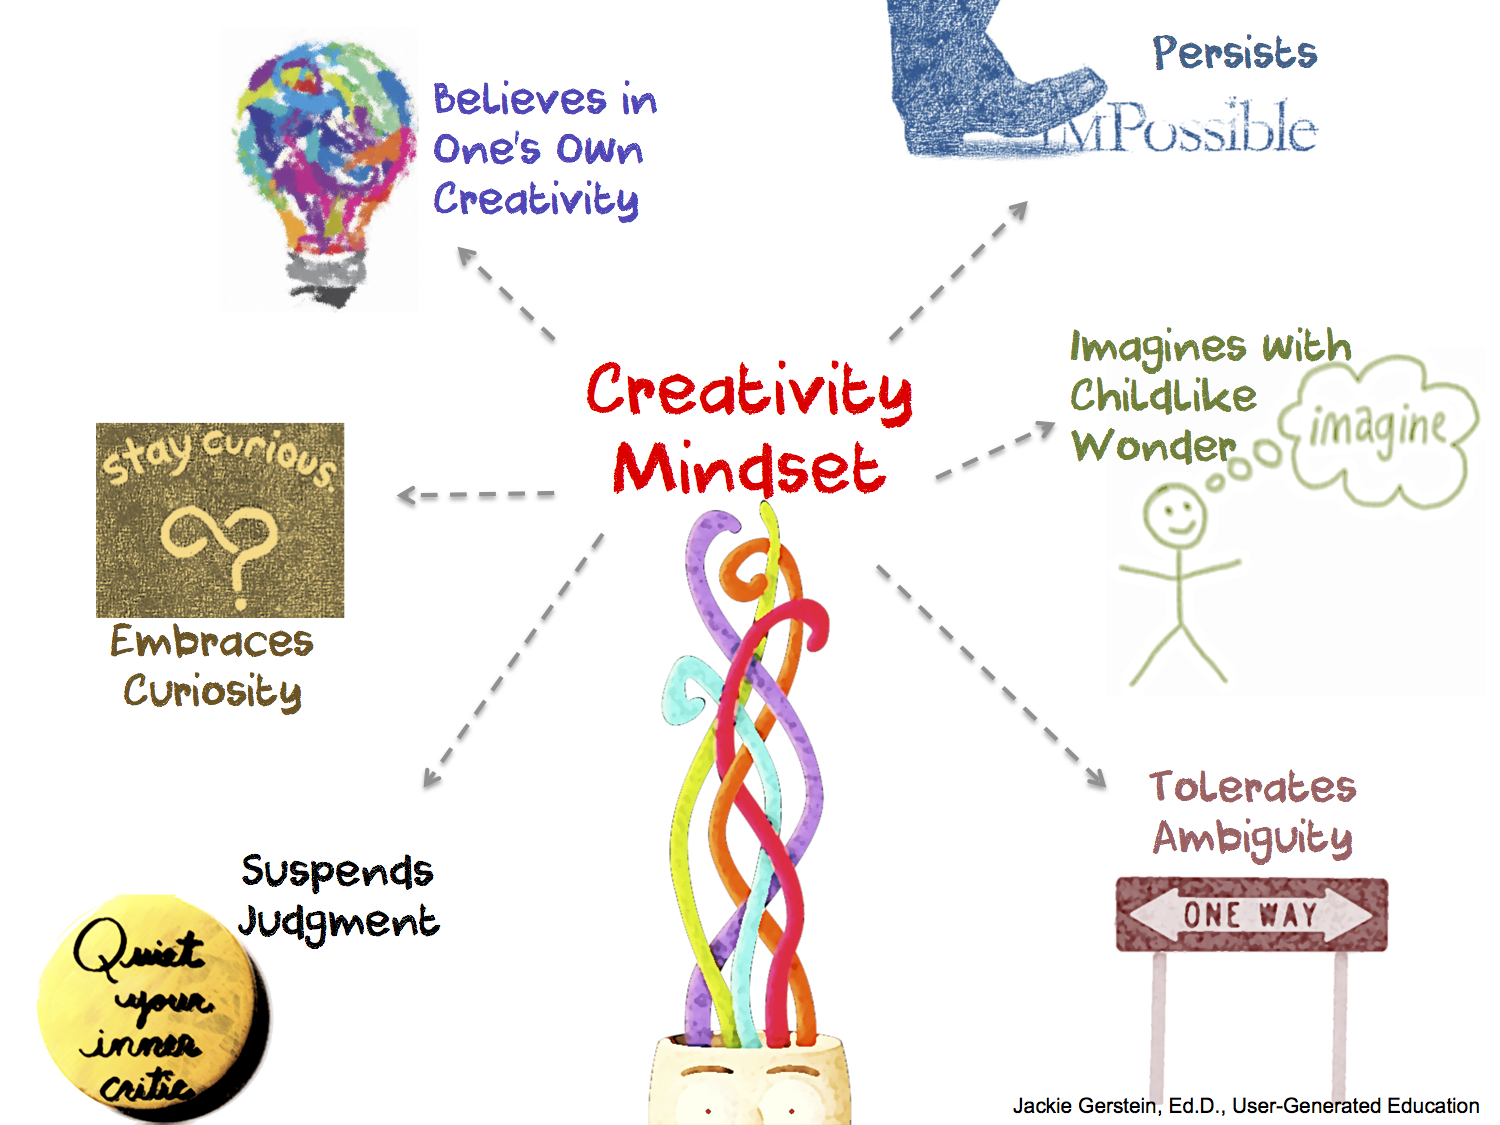 The Creativity Mindset